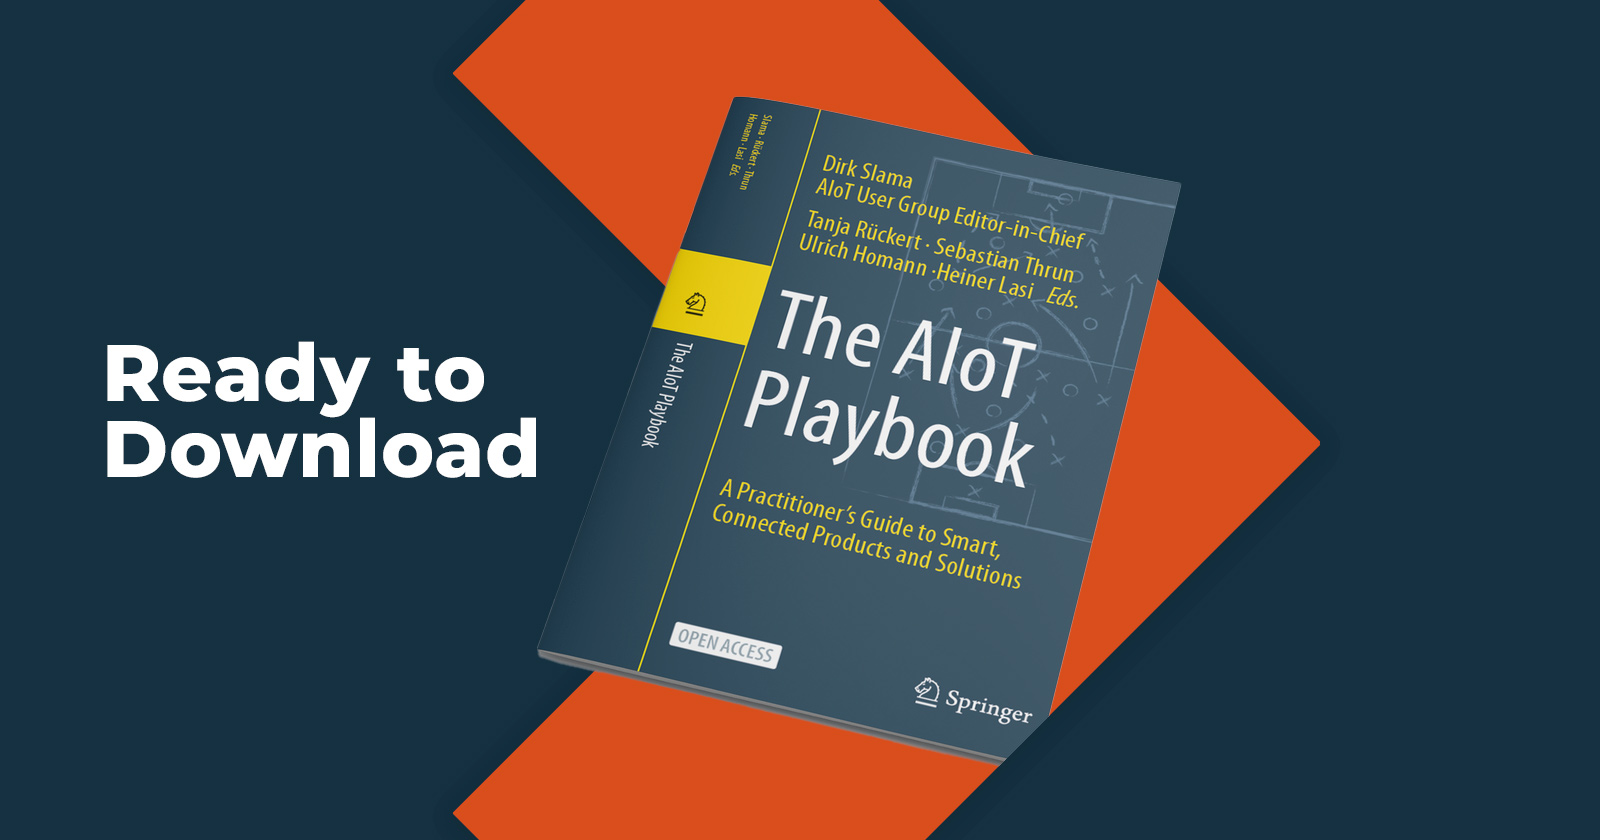 The AIoT Playbook